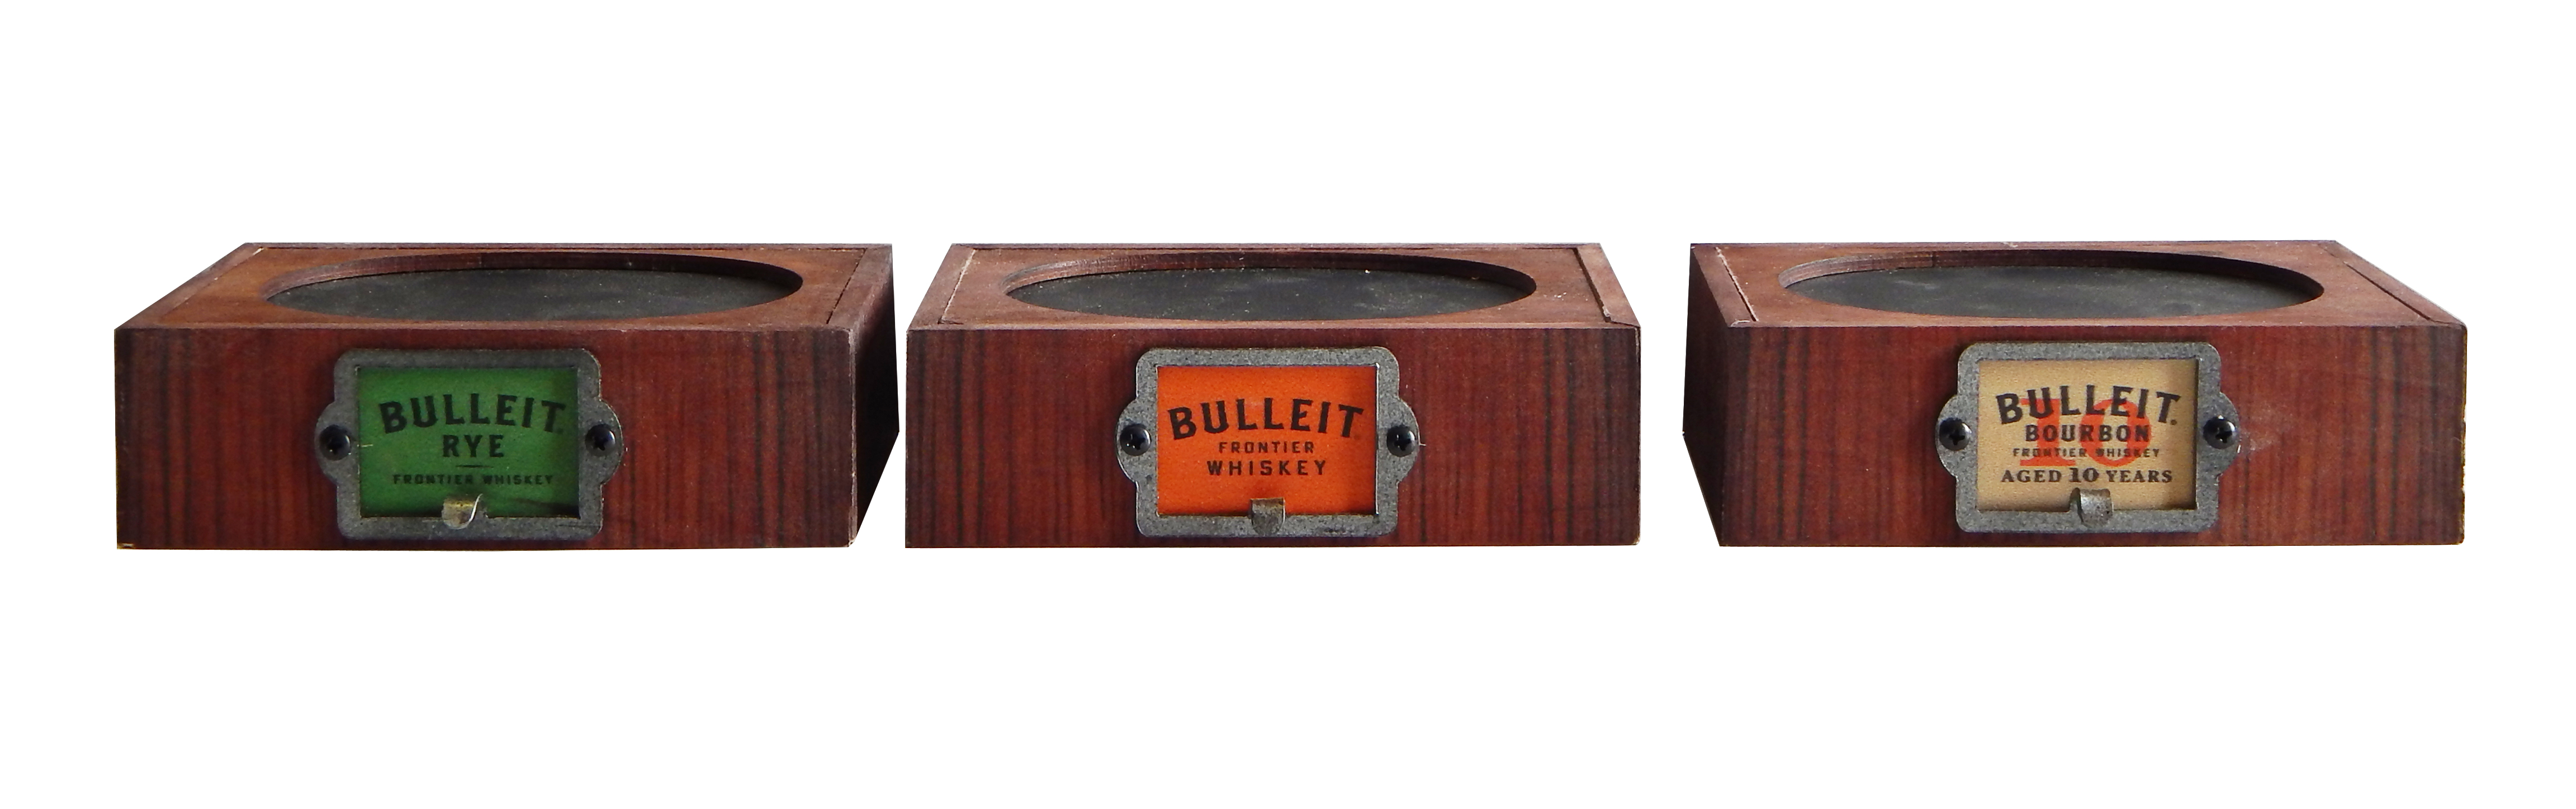 Bulleit Bottle Glorifier Set of 3 copy